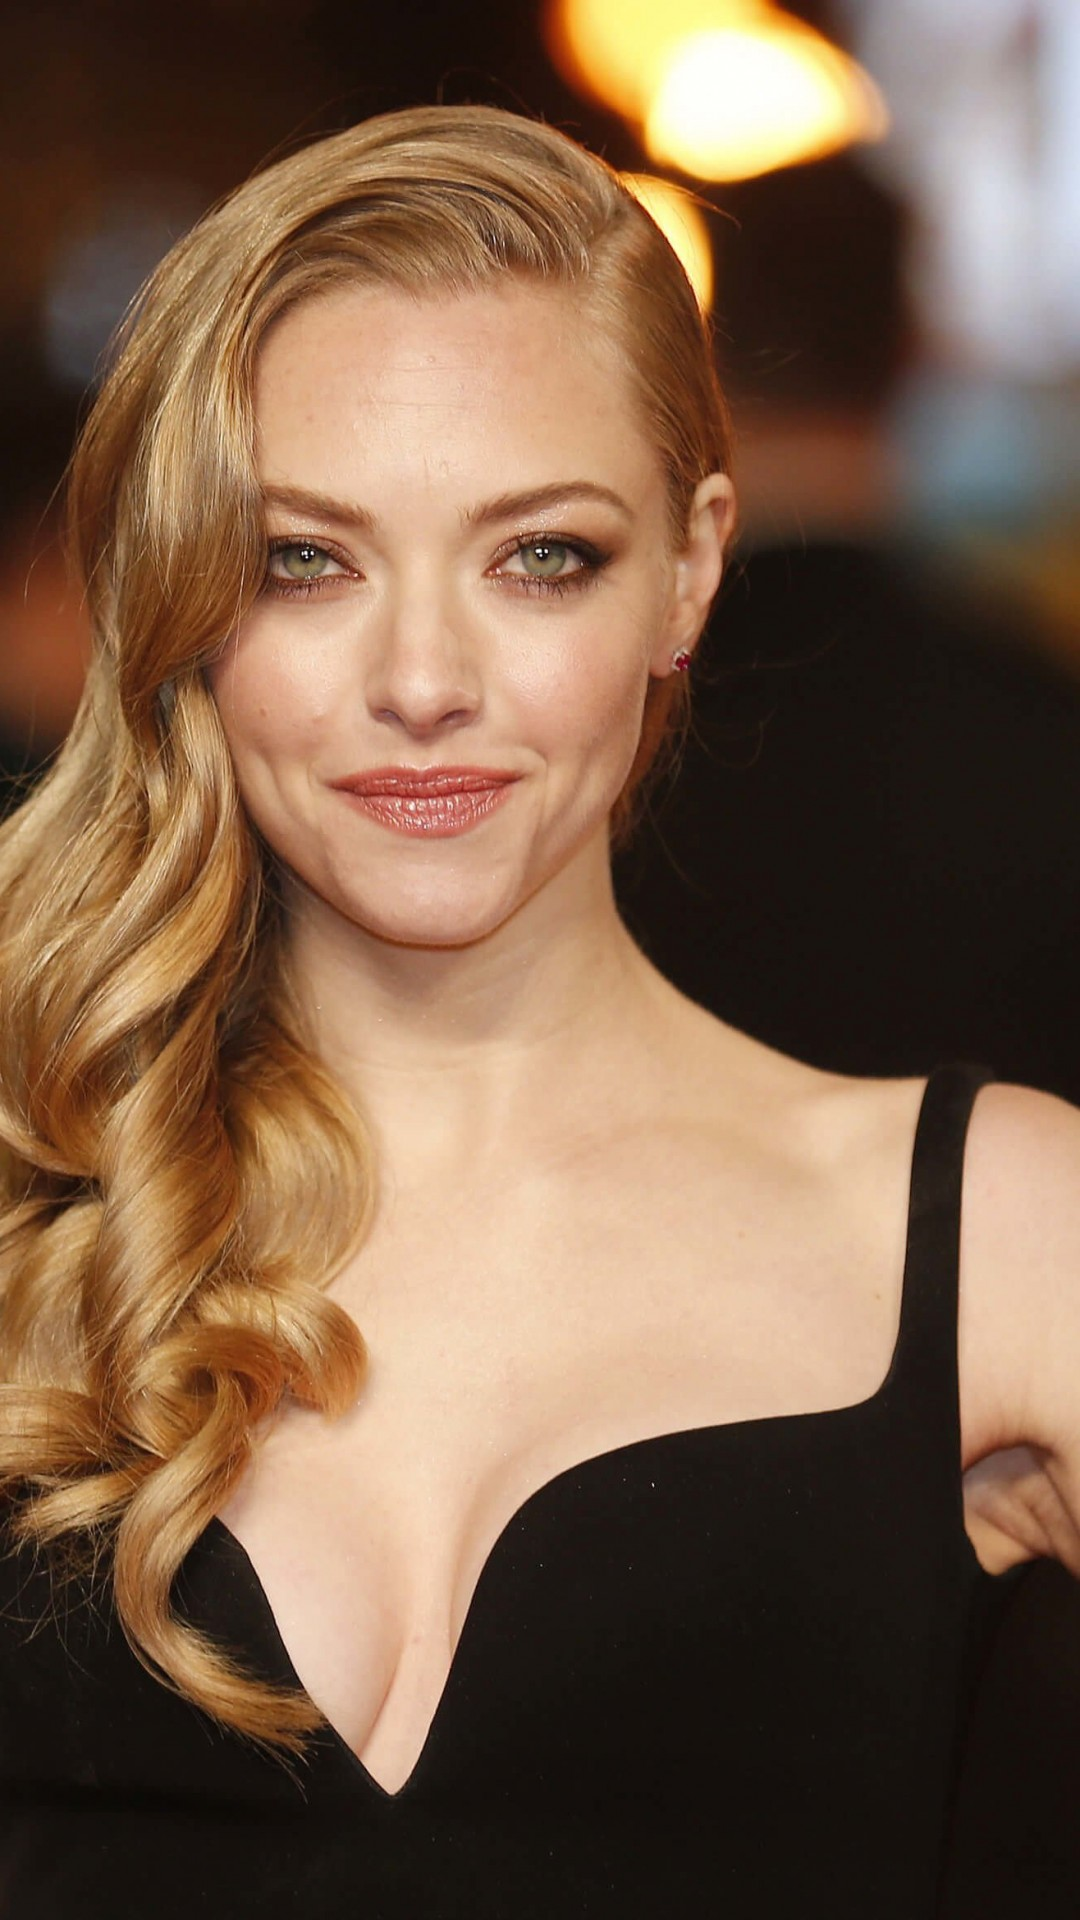 Amanda Seyfried Wallpaper for Google Nexus 5